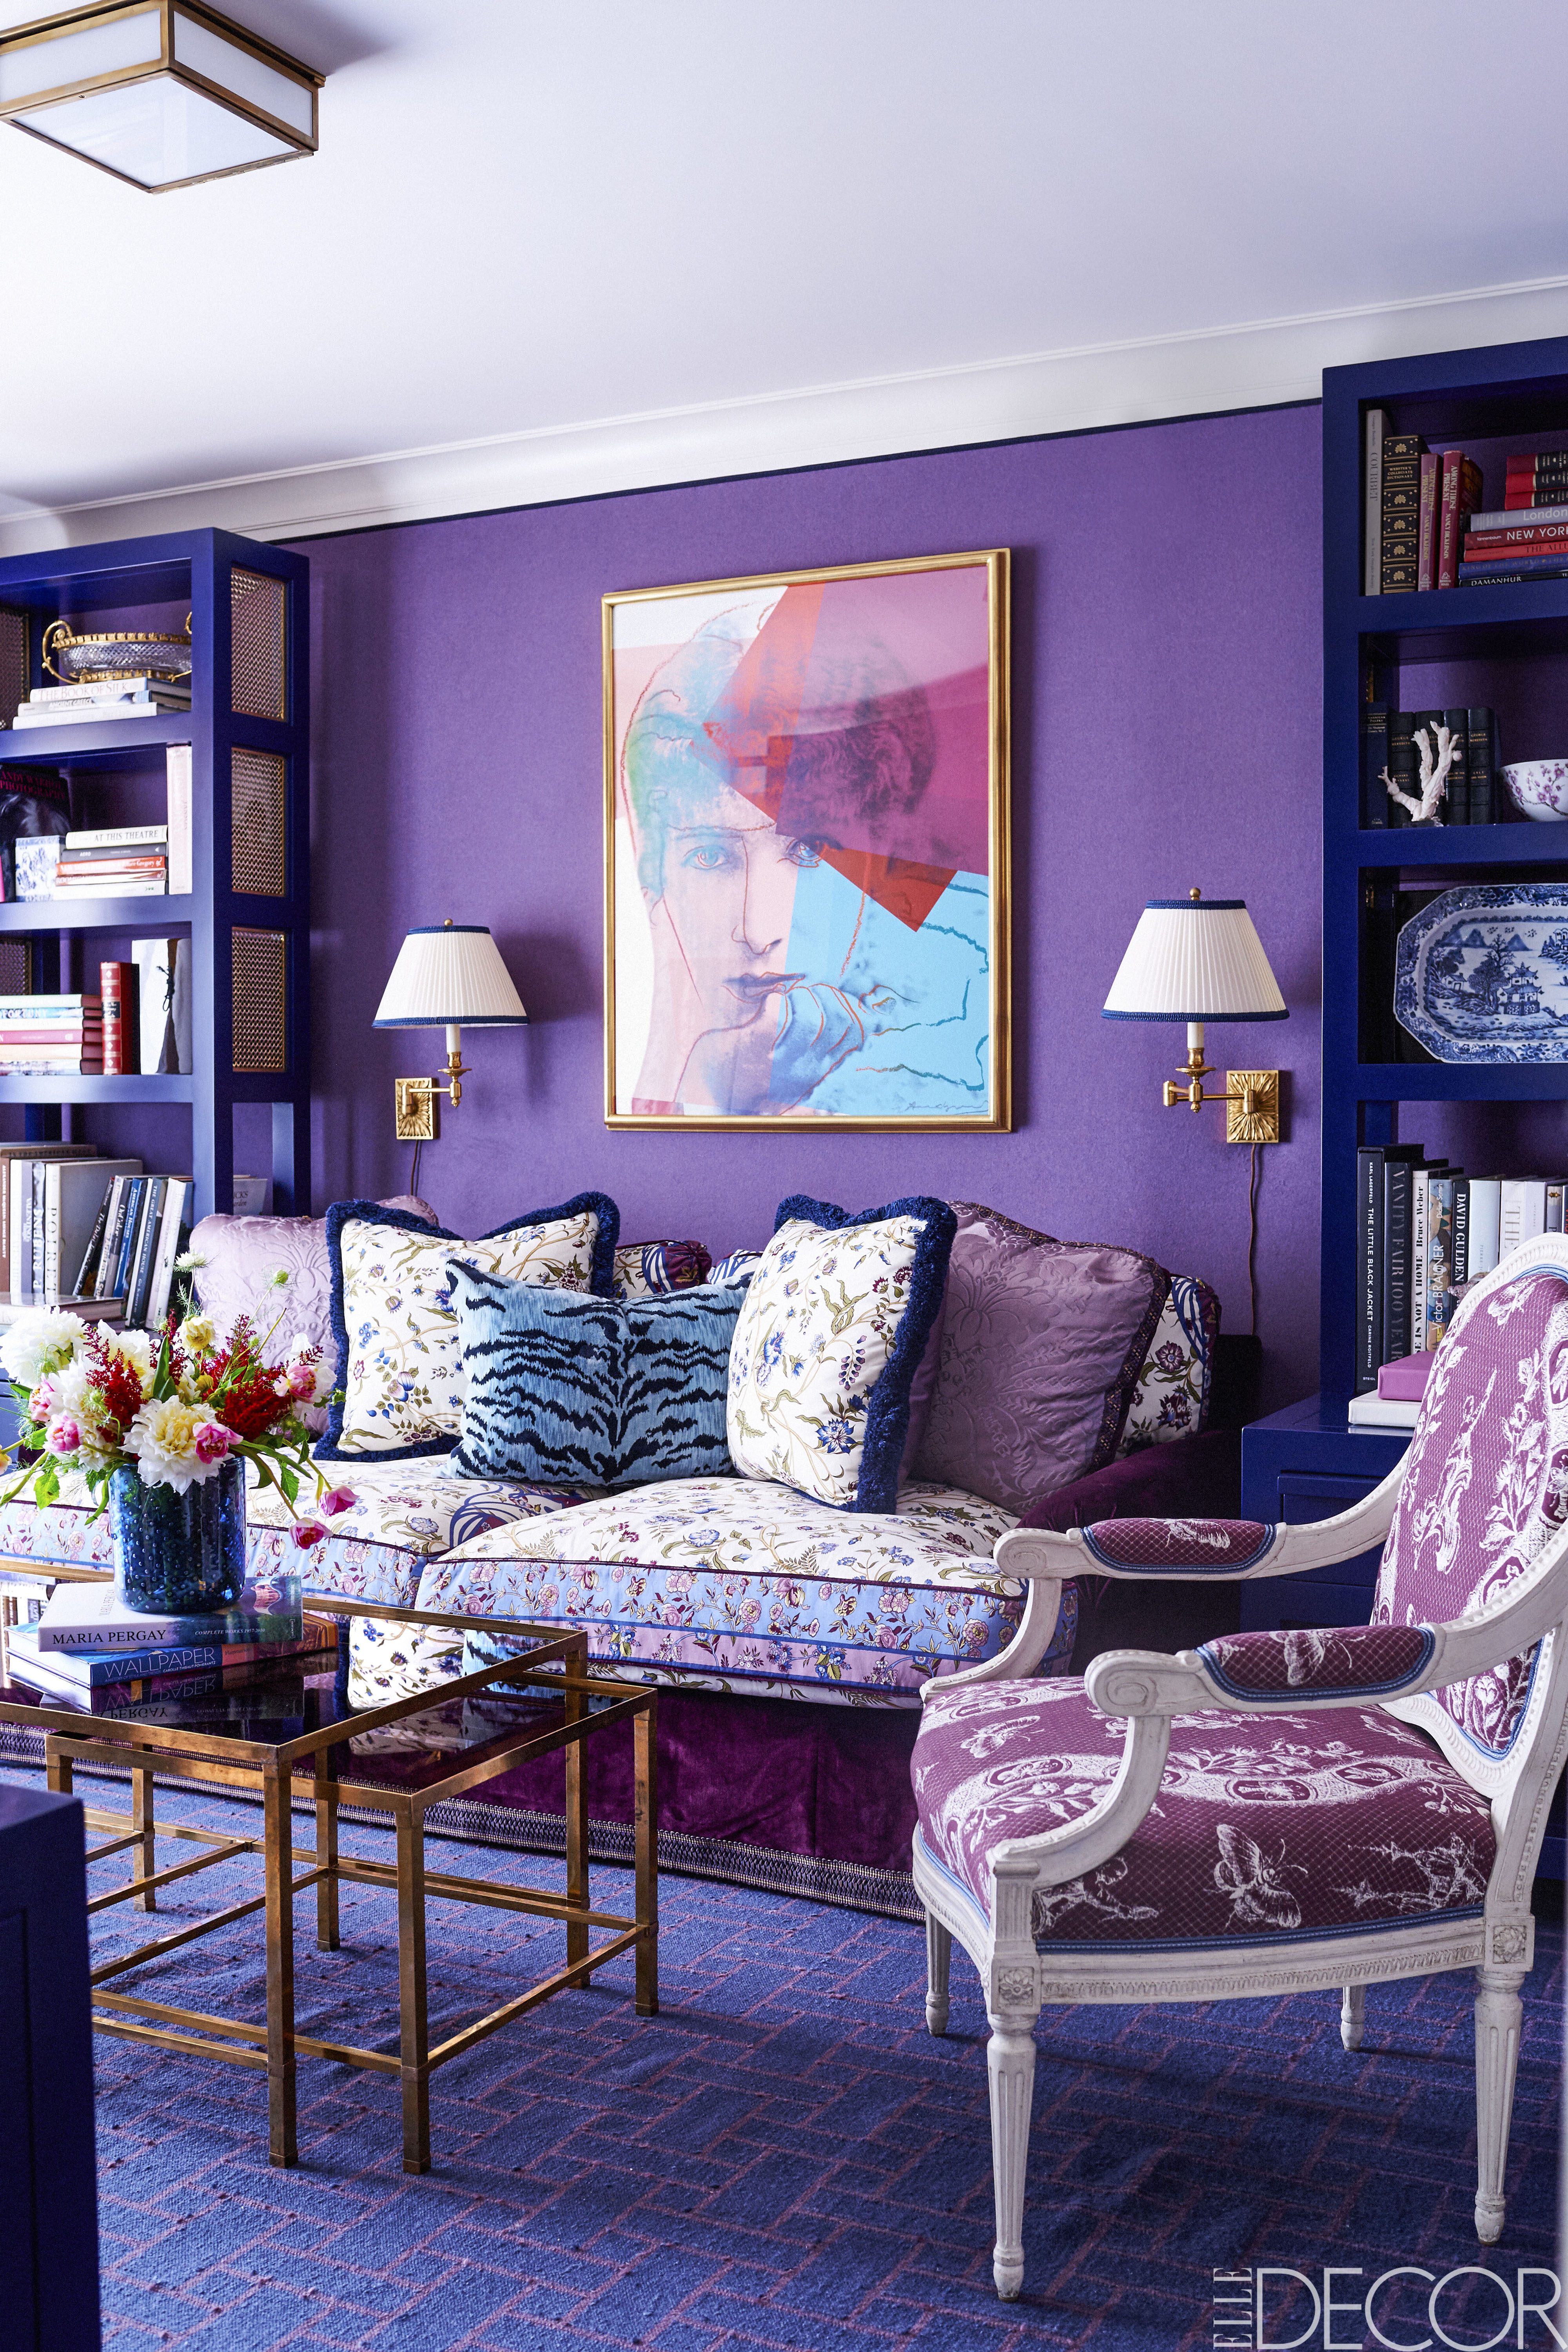 15 Best Purple Rooms & Walls - Ideas for Decorating with ...